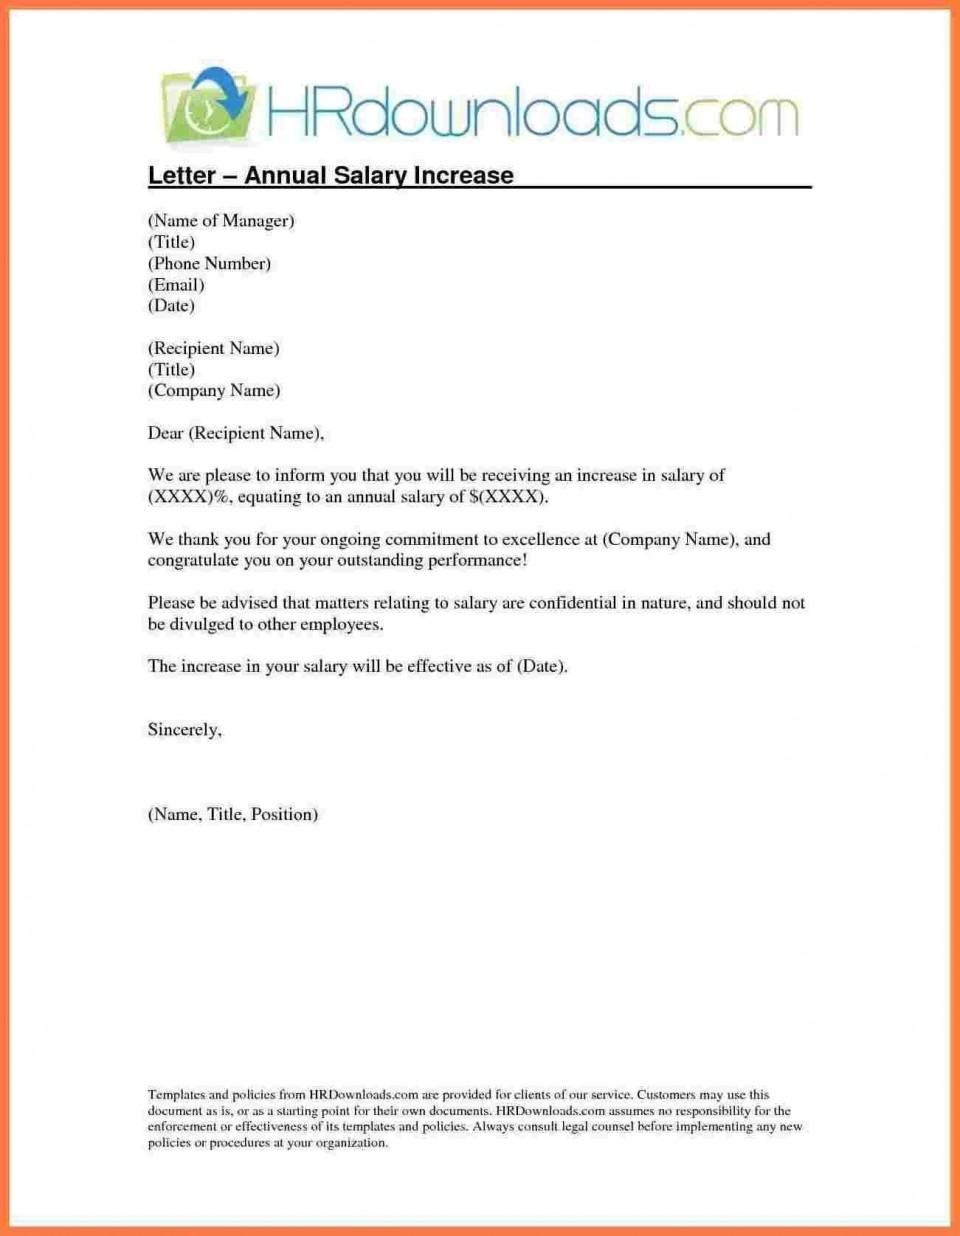 005 Singular Salary Increase Letter Template Idea  From Employer To Employee Australia No For960